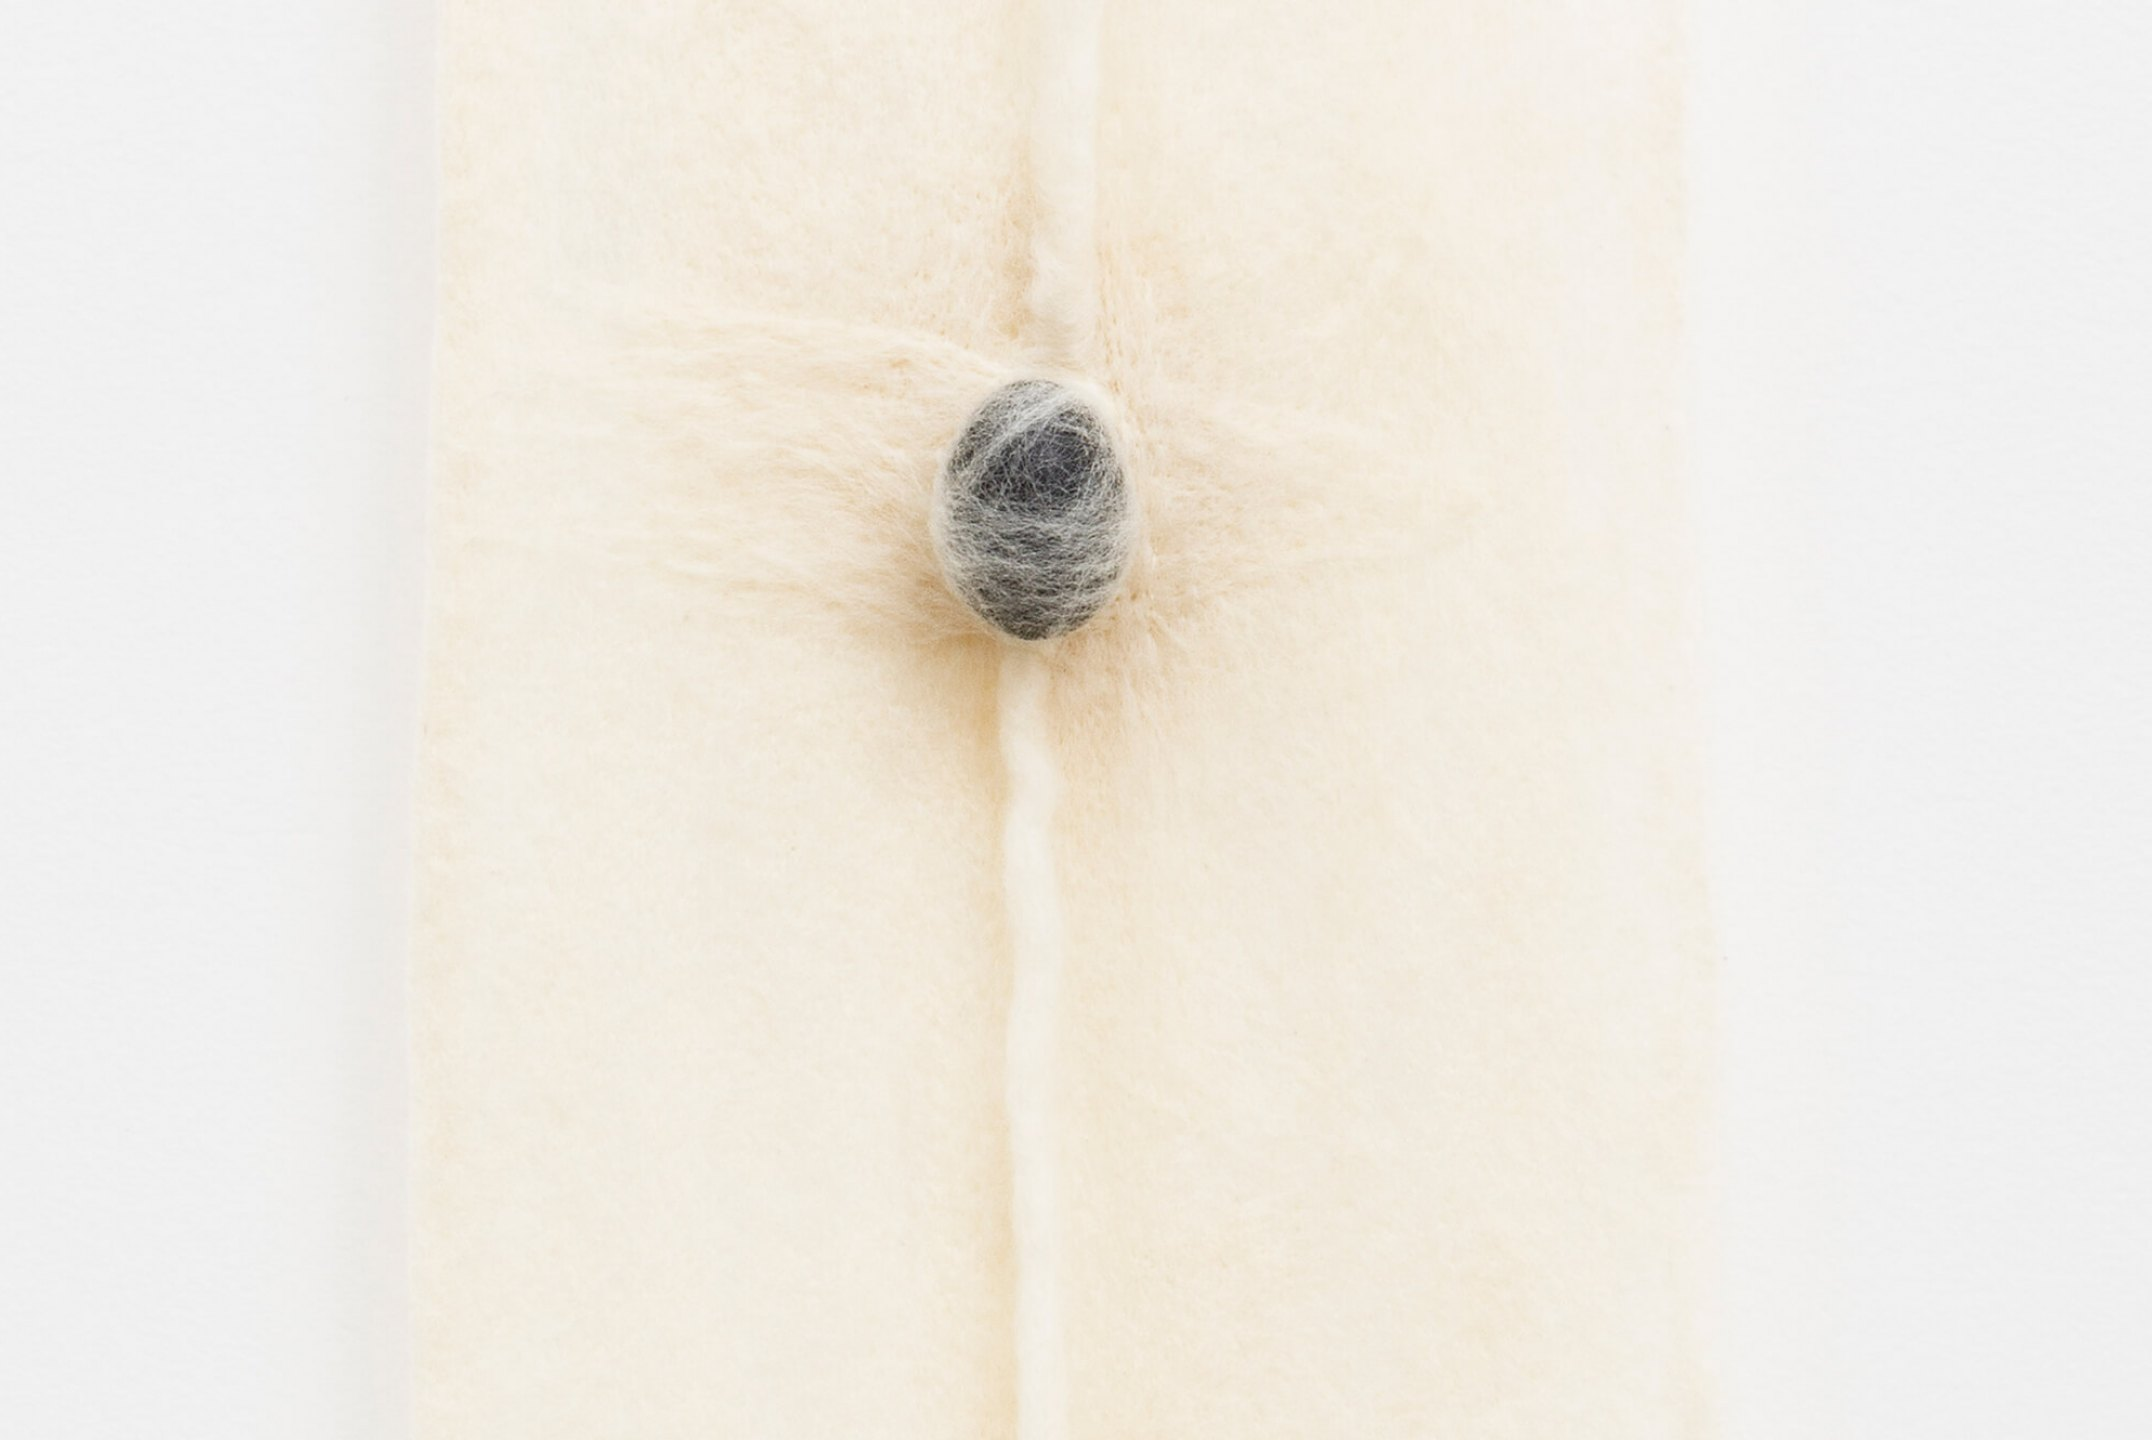 Paloma Bosquê, <em>Being #4</em>, 2015, wool felted by hand, dyed bee wax and brass holder, 95 × 27,5 cm - Mendes Wood DM